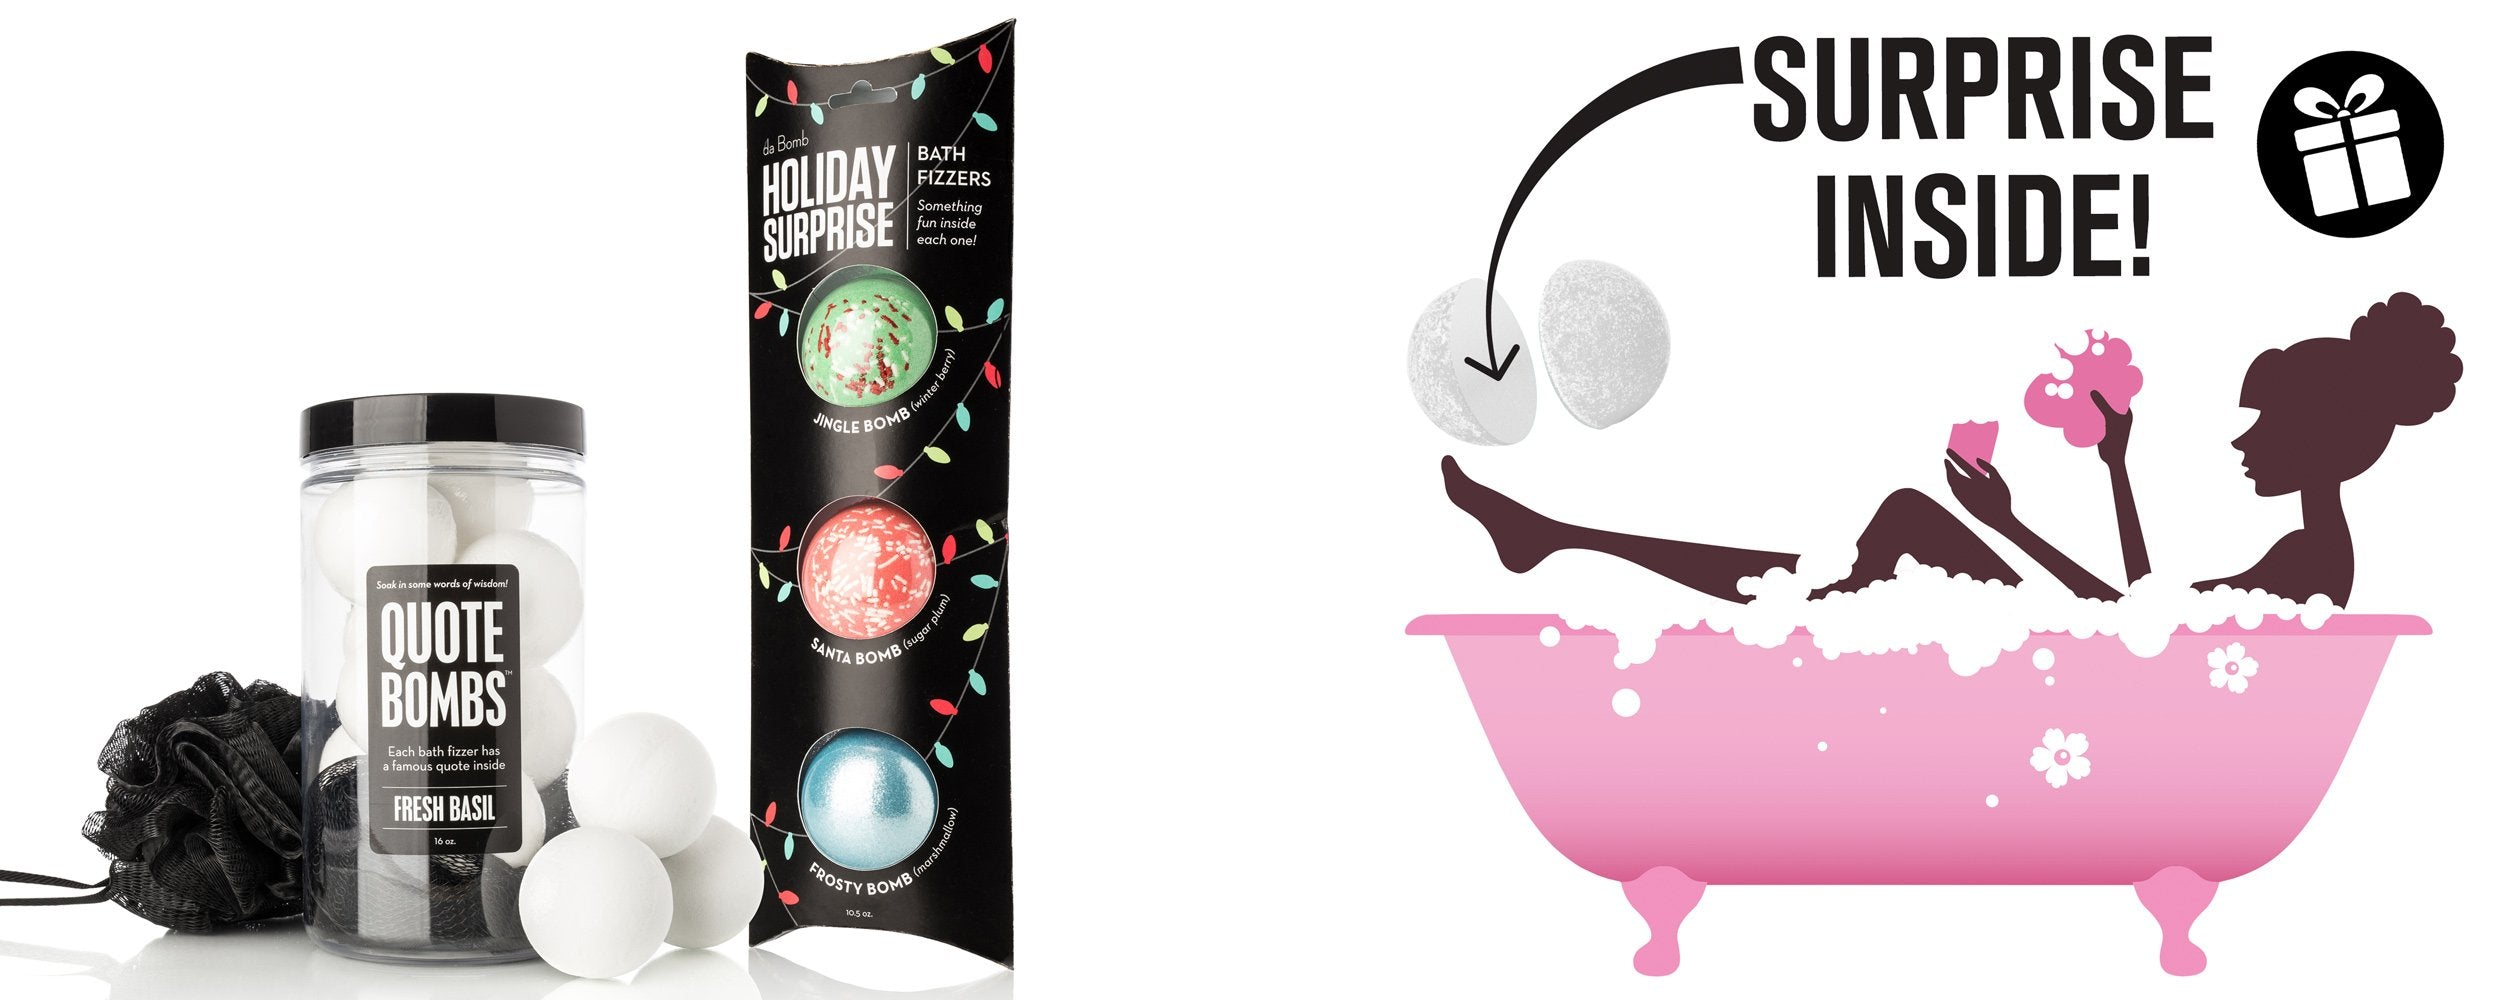 DA BOMB FIZZERS - Relaxing Bath Bombs for Every Mood - Quote Bomb Jar + Holiday Exclusive Pack